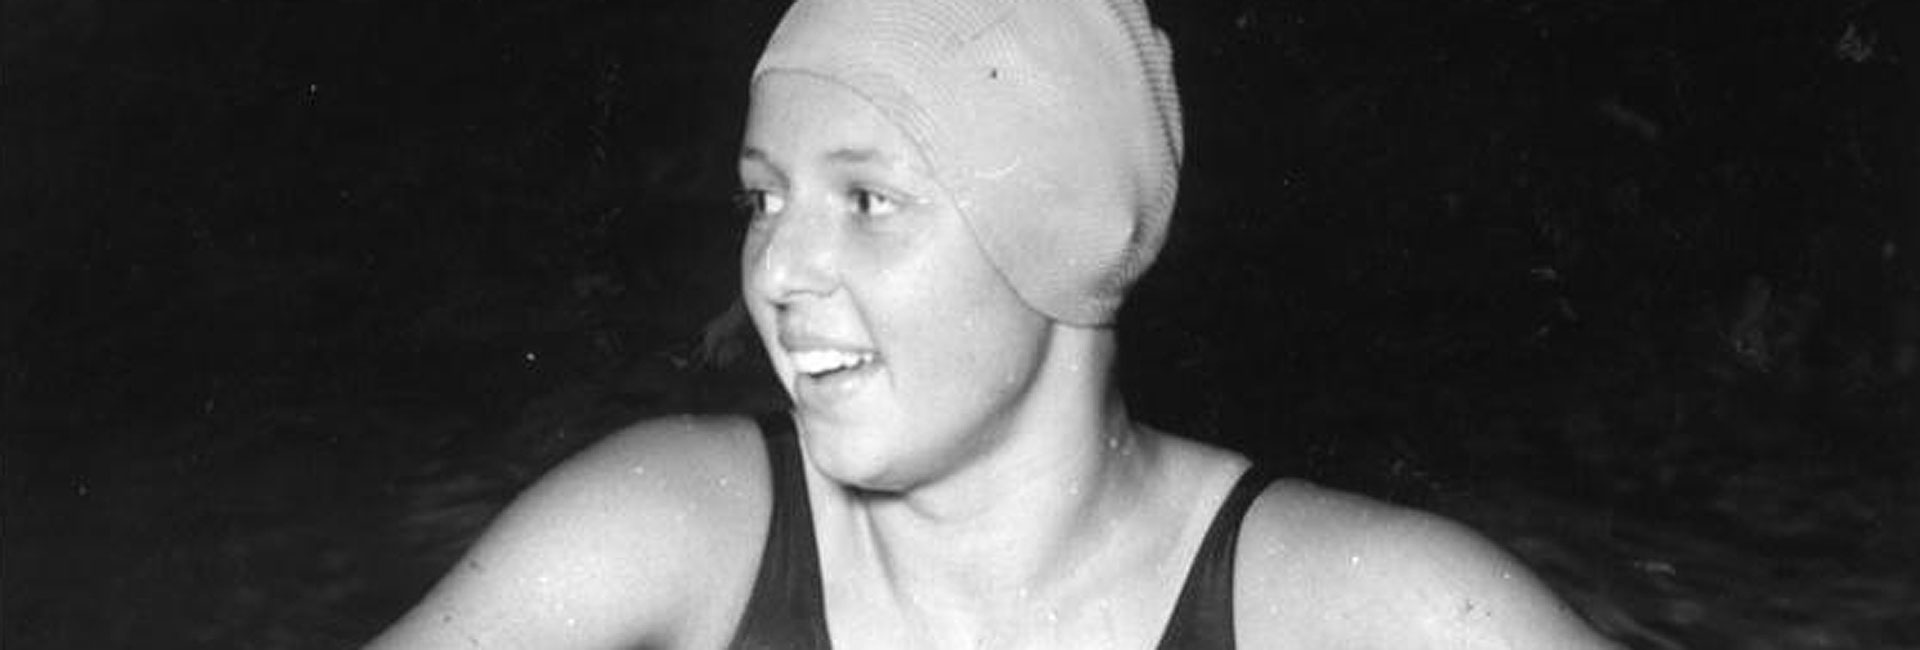 Philippa Gould, New Zealand Swimmer